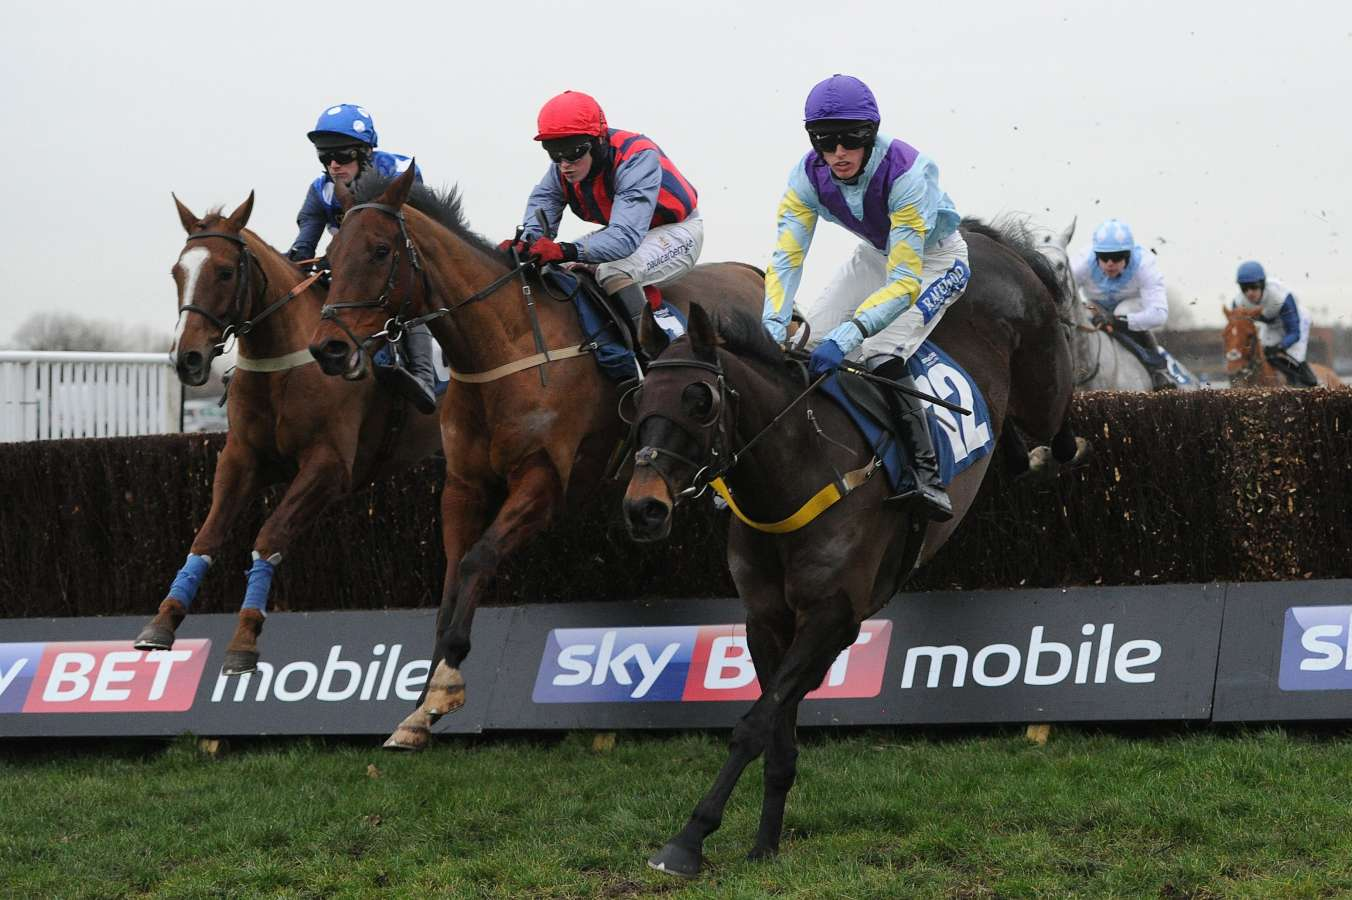 CrownBet/William Hill owner The Stars Group buys Sky Bet